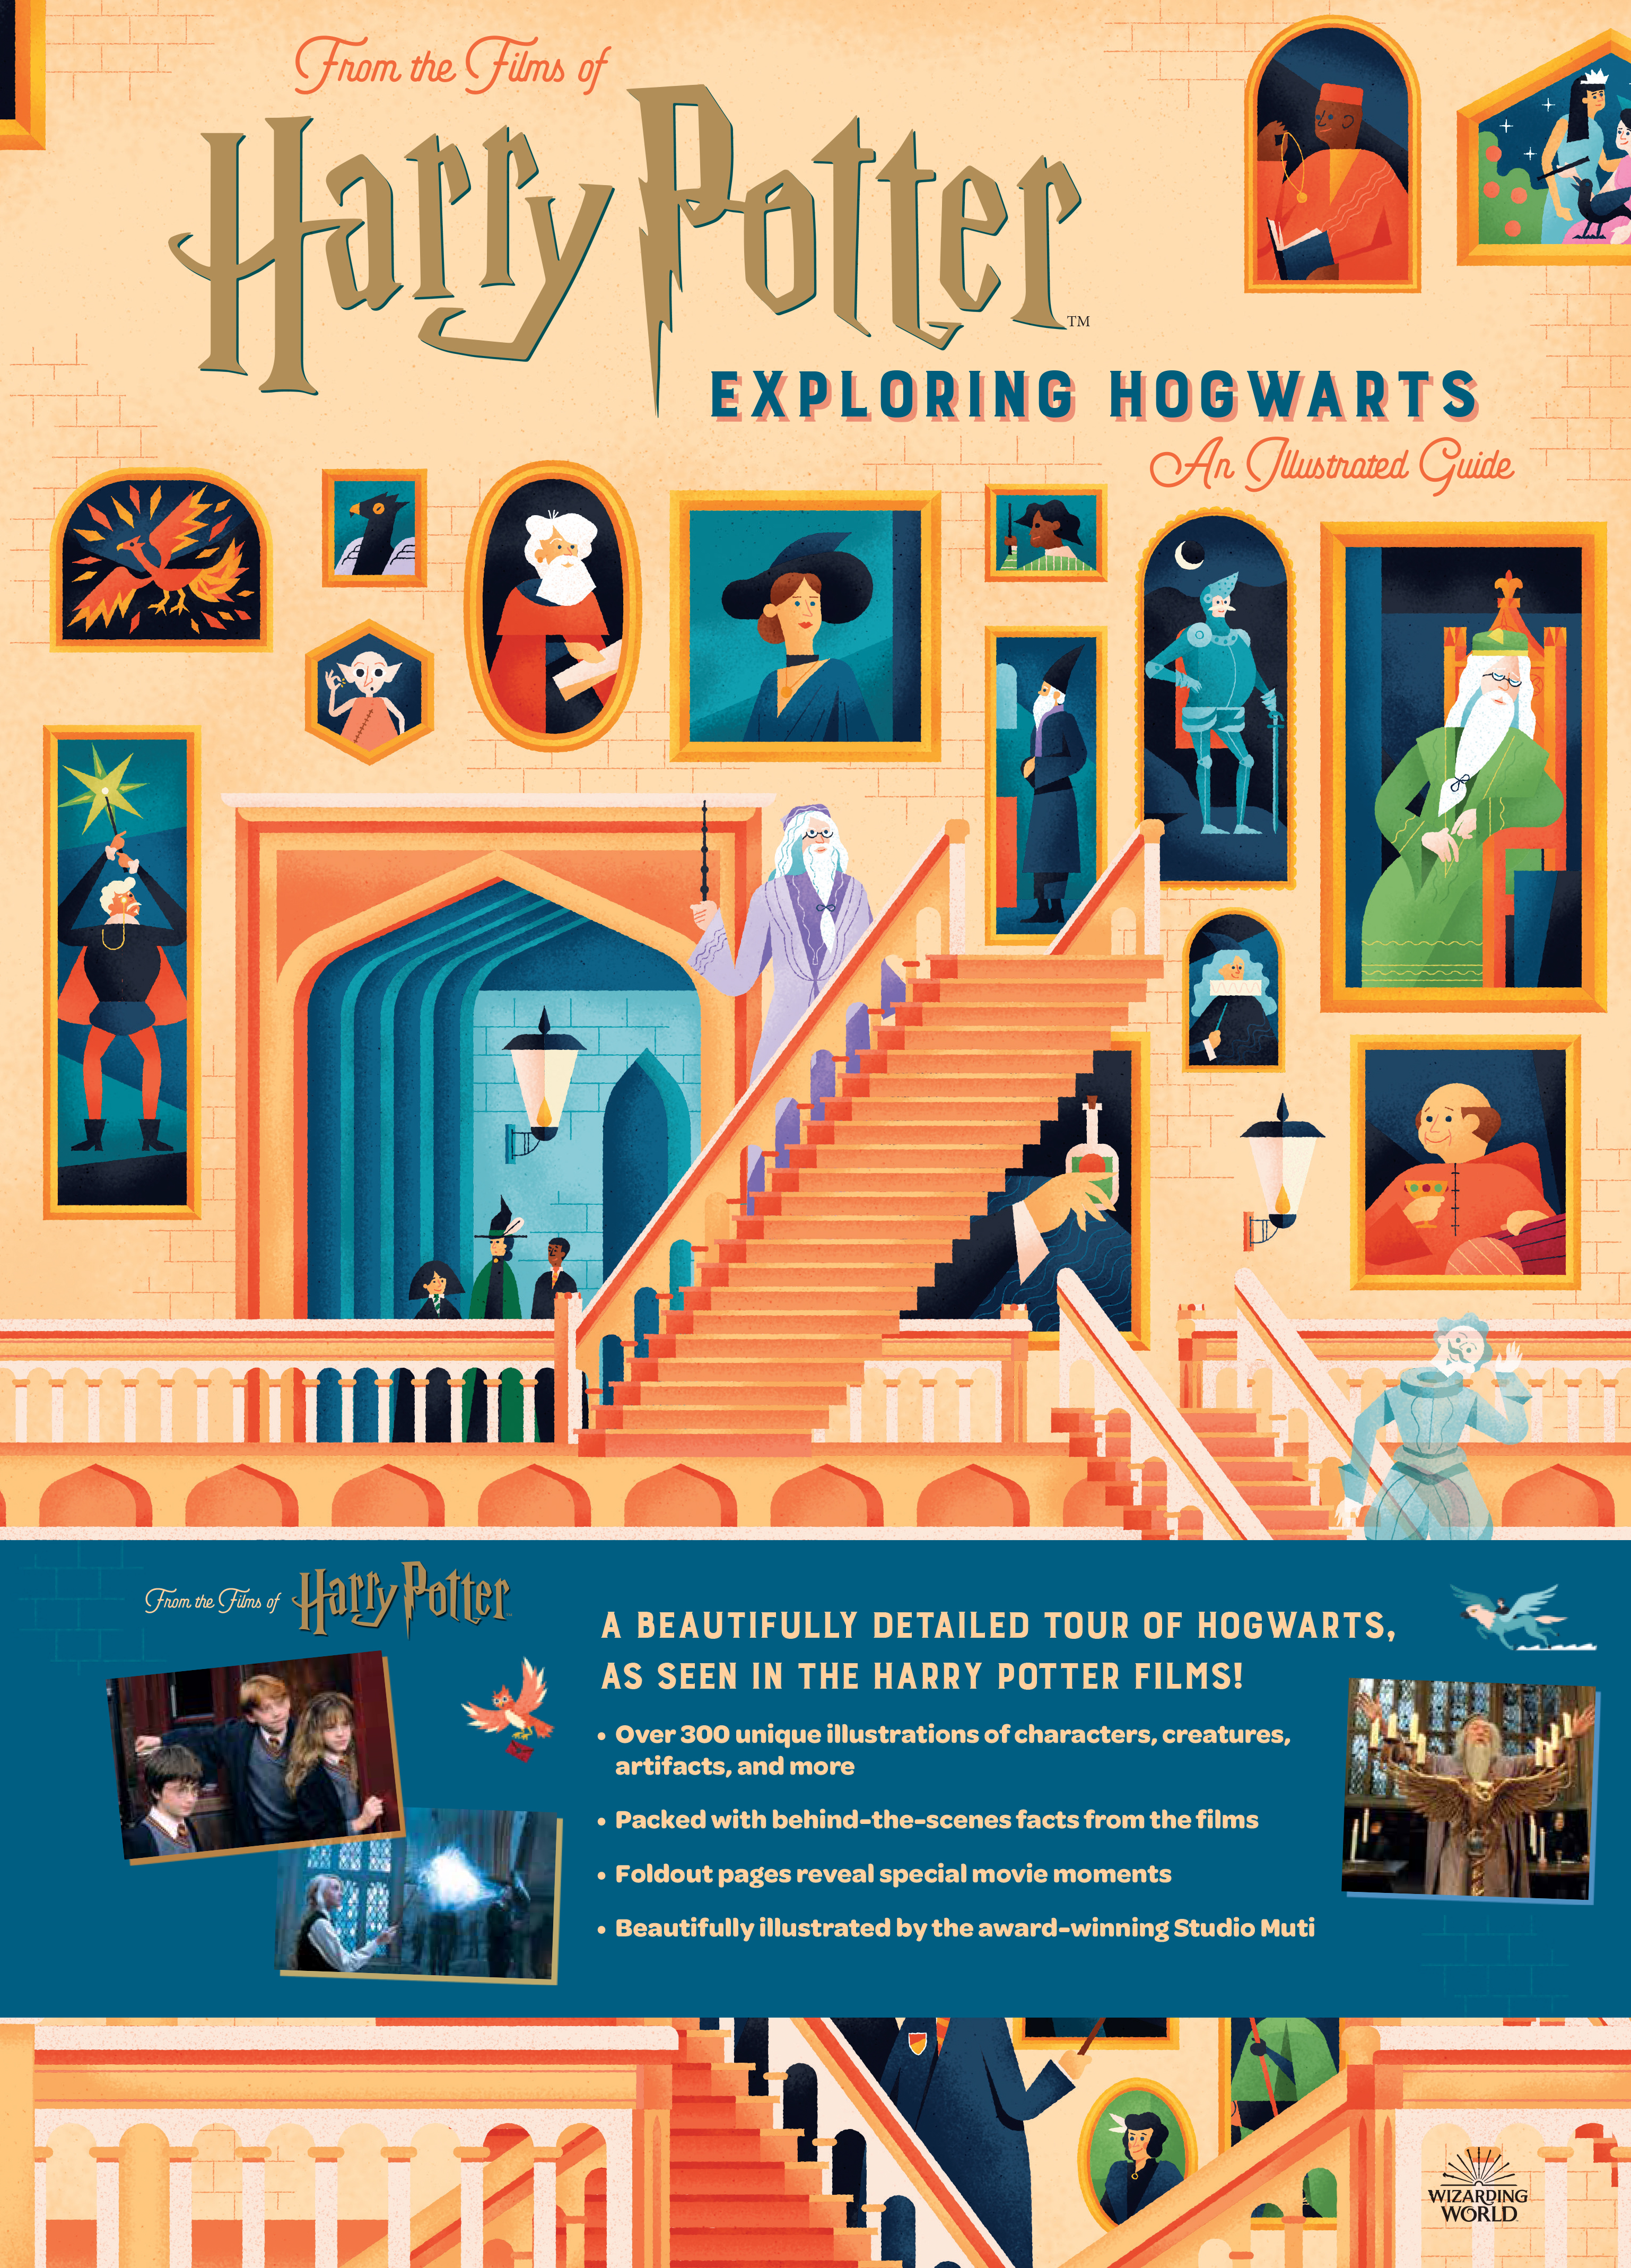 With this book, readers can do exactly as the title indicates – explore Hogwarts!